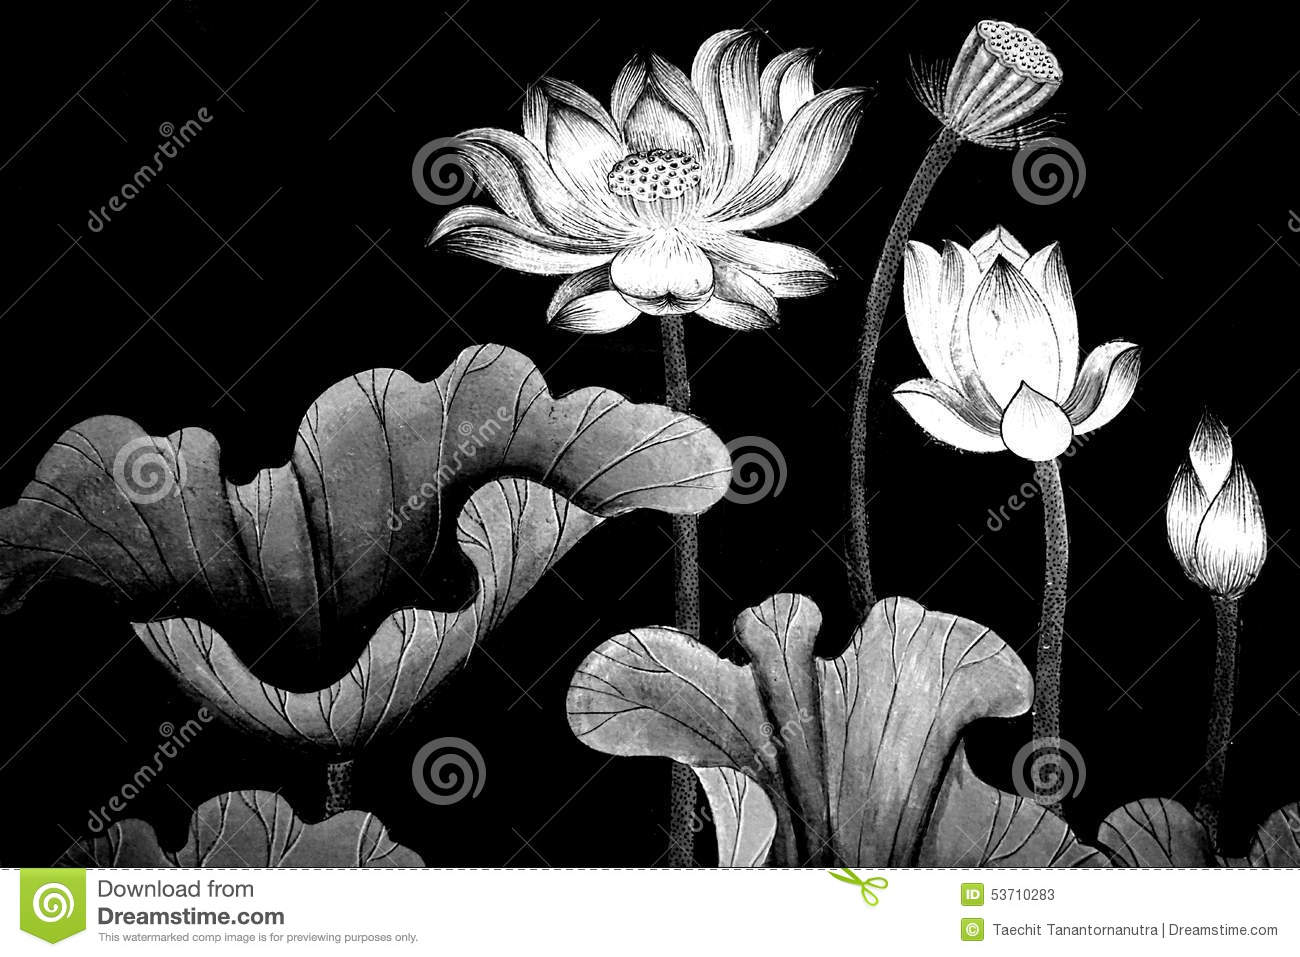 Black And White Line Drawing Flower : Pencil flower drawings rose flowers black and white edition